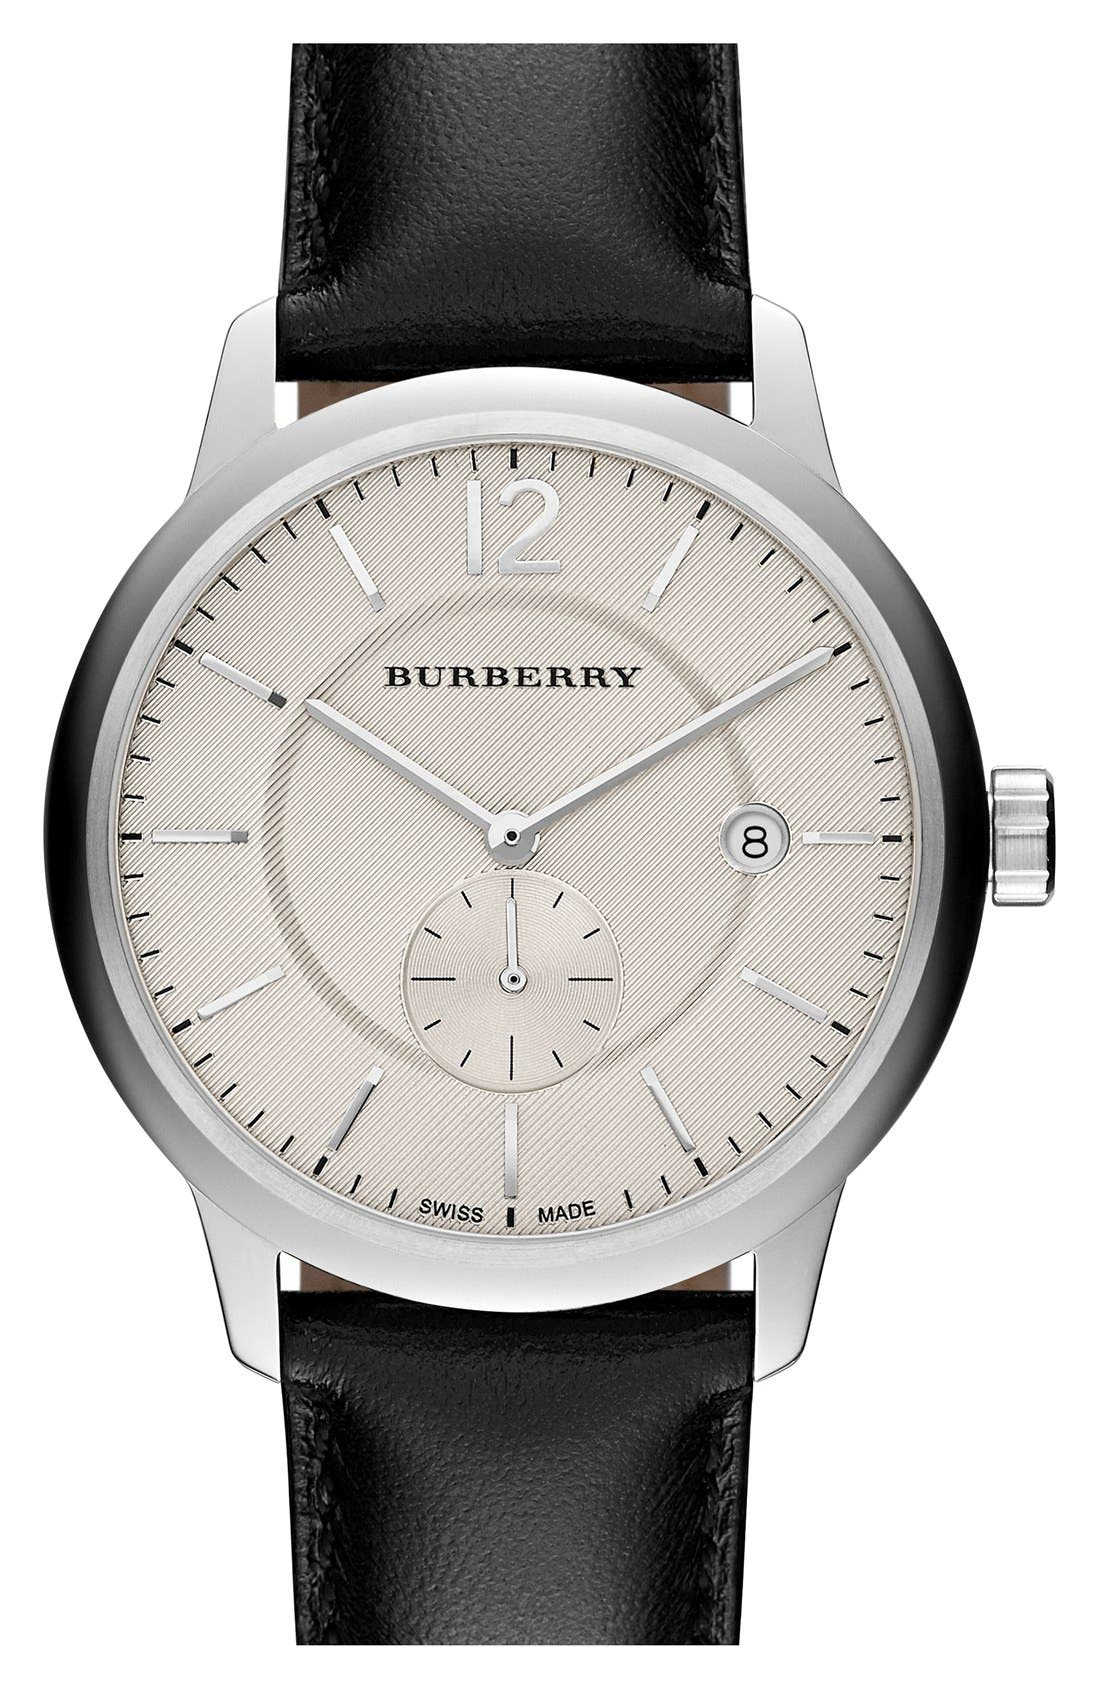 BURBERRY, Textured Dial Watch, 40mm, Main thumbnail 1, color, 001